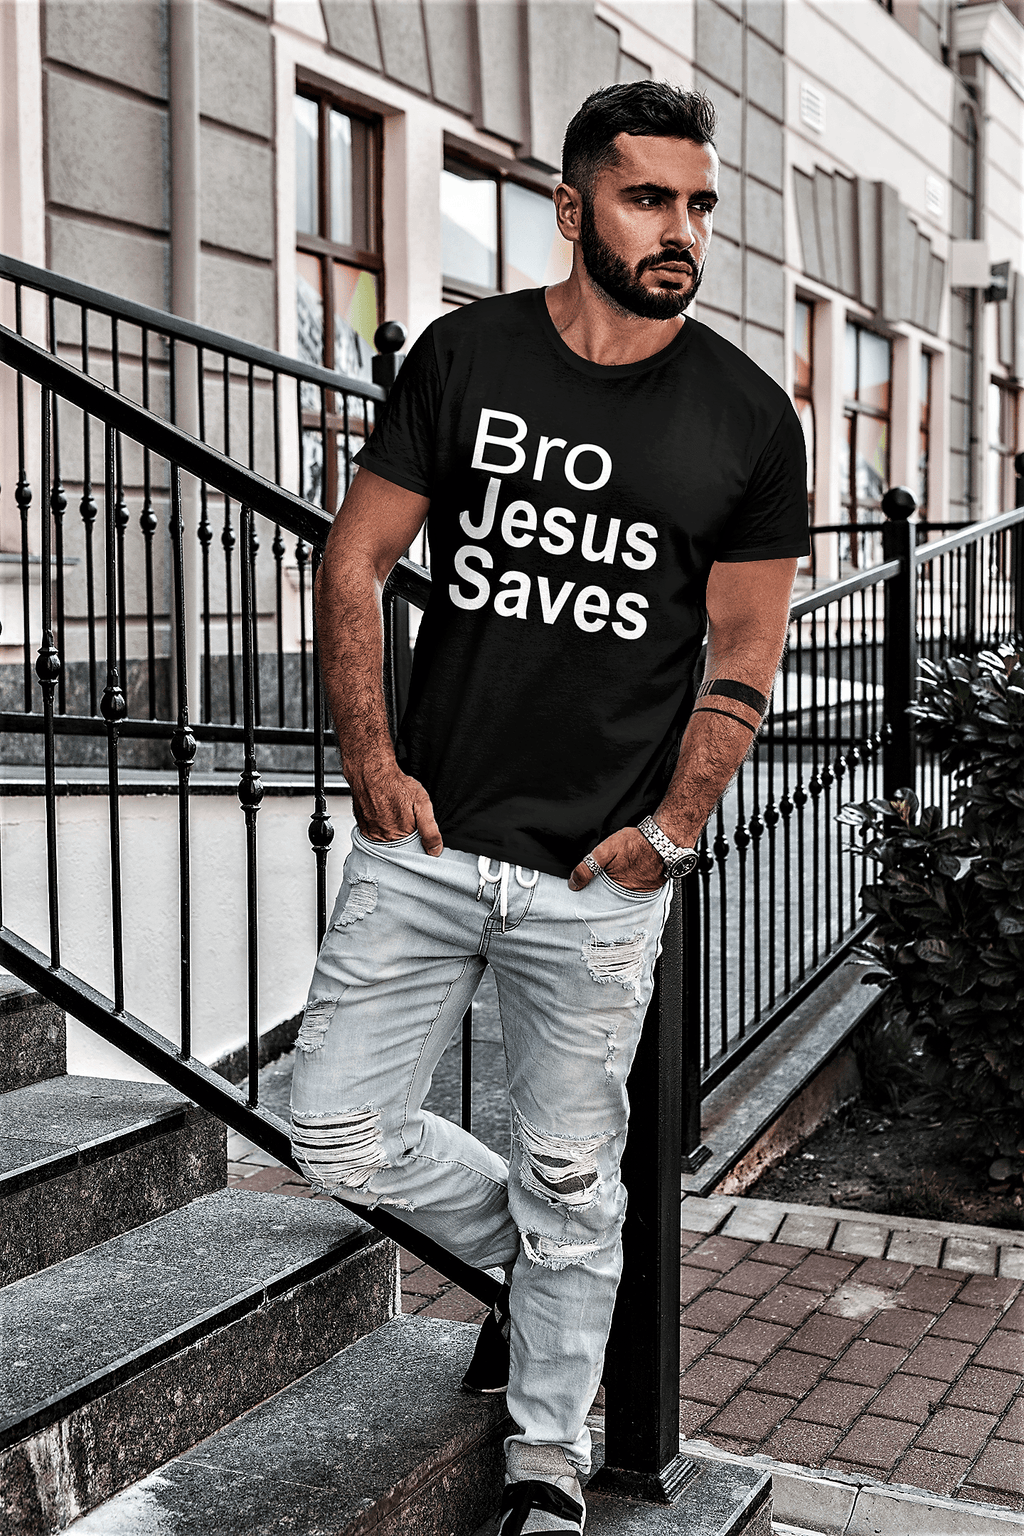 Bro Jesus Saves Shirt